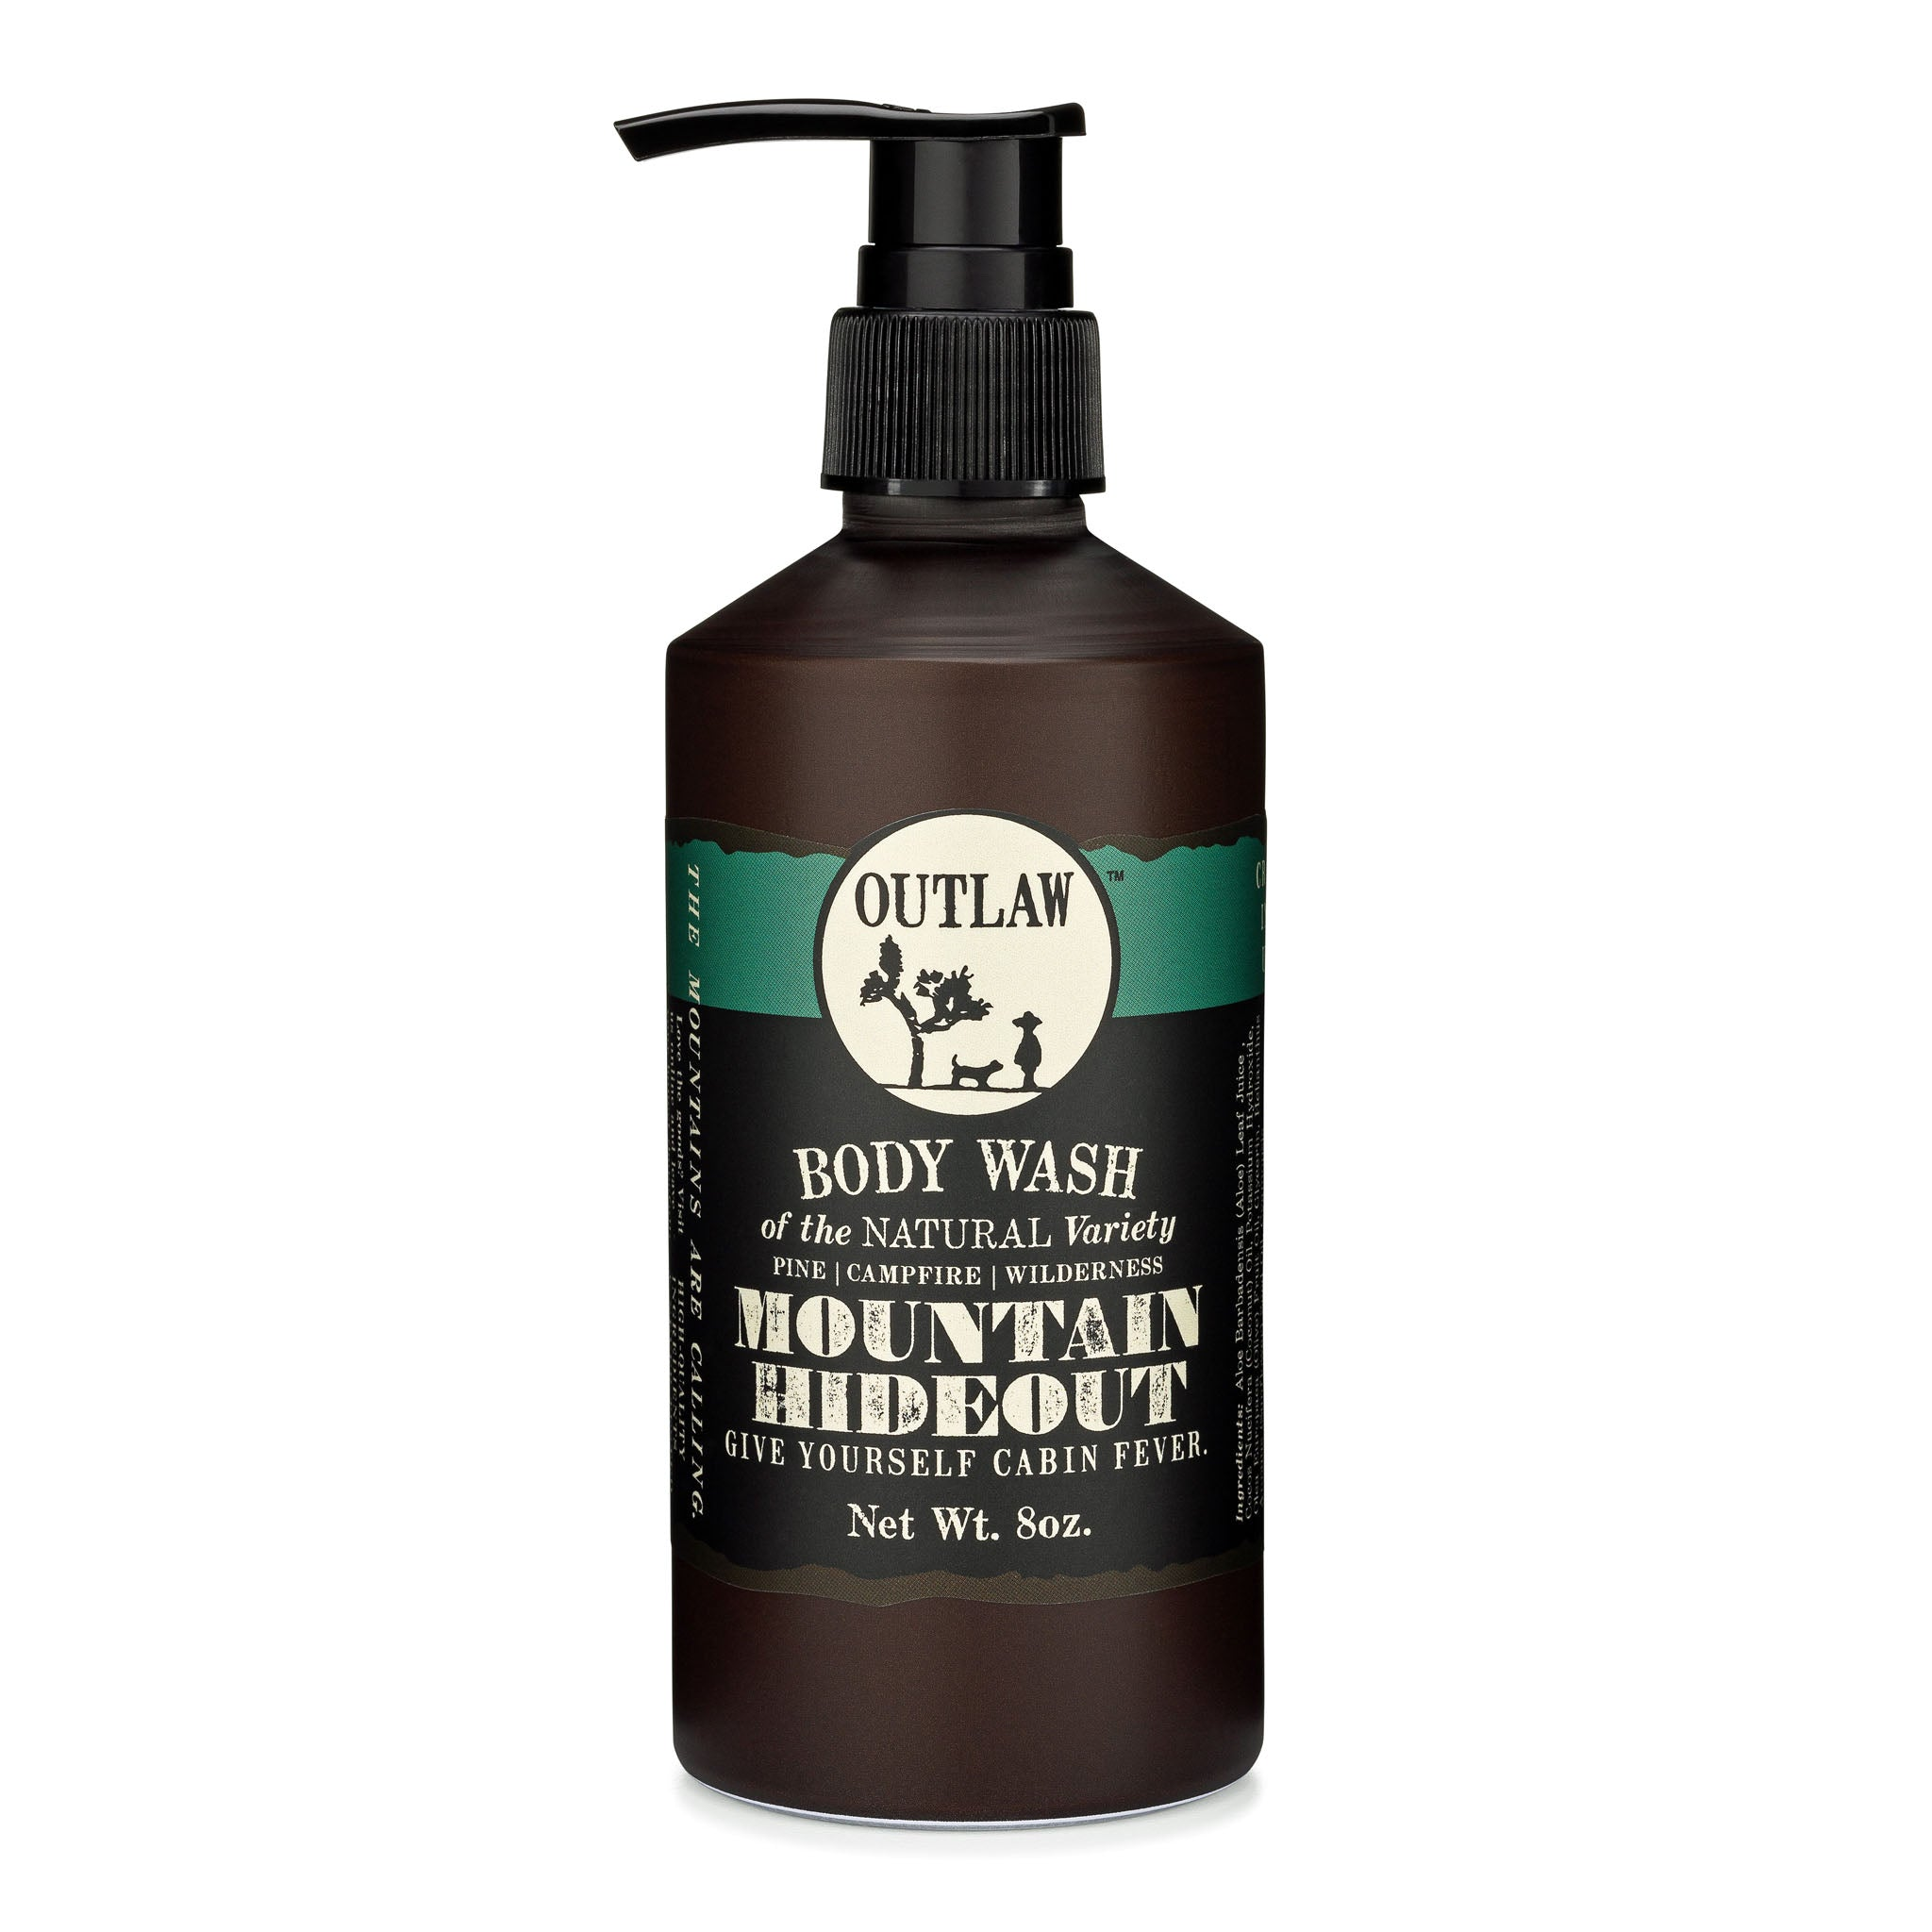 Mountain Hideout Body Wash